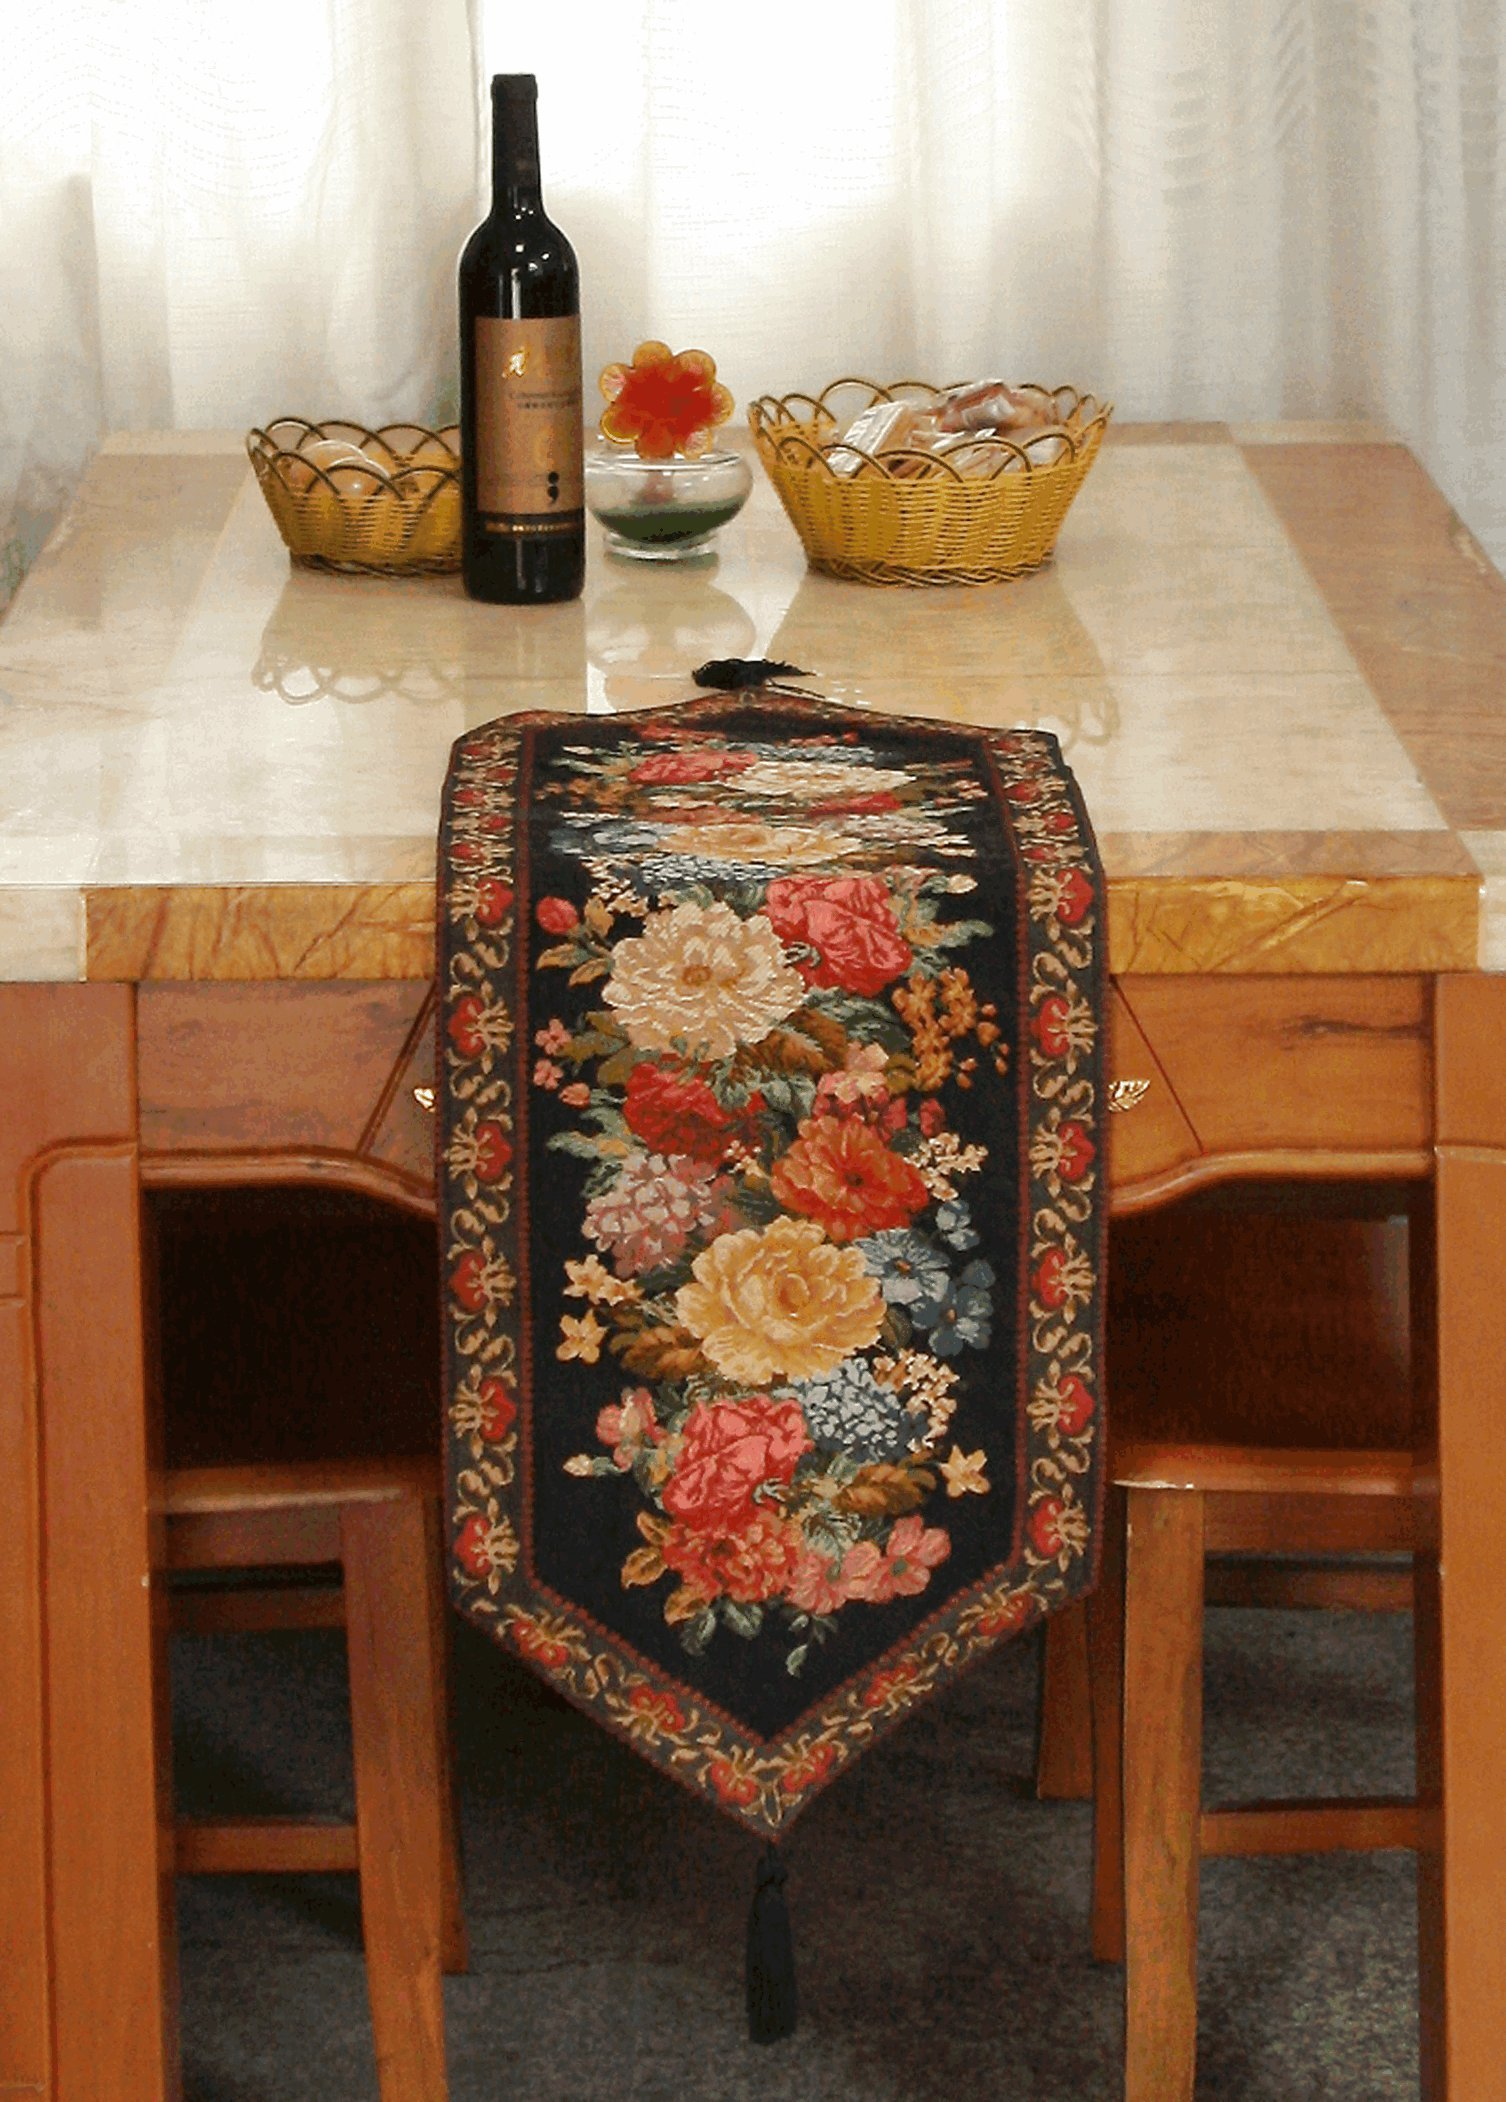 Tache Floral Black Table Runner - Midnight Awakening - Woven Tapestry Country Rustic Table Linen - 13'' x 48''